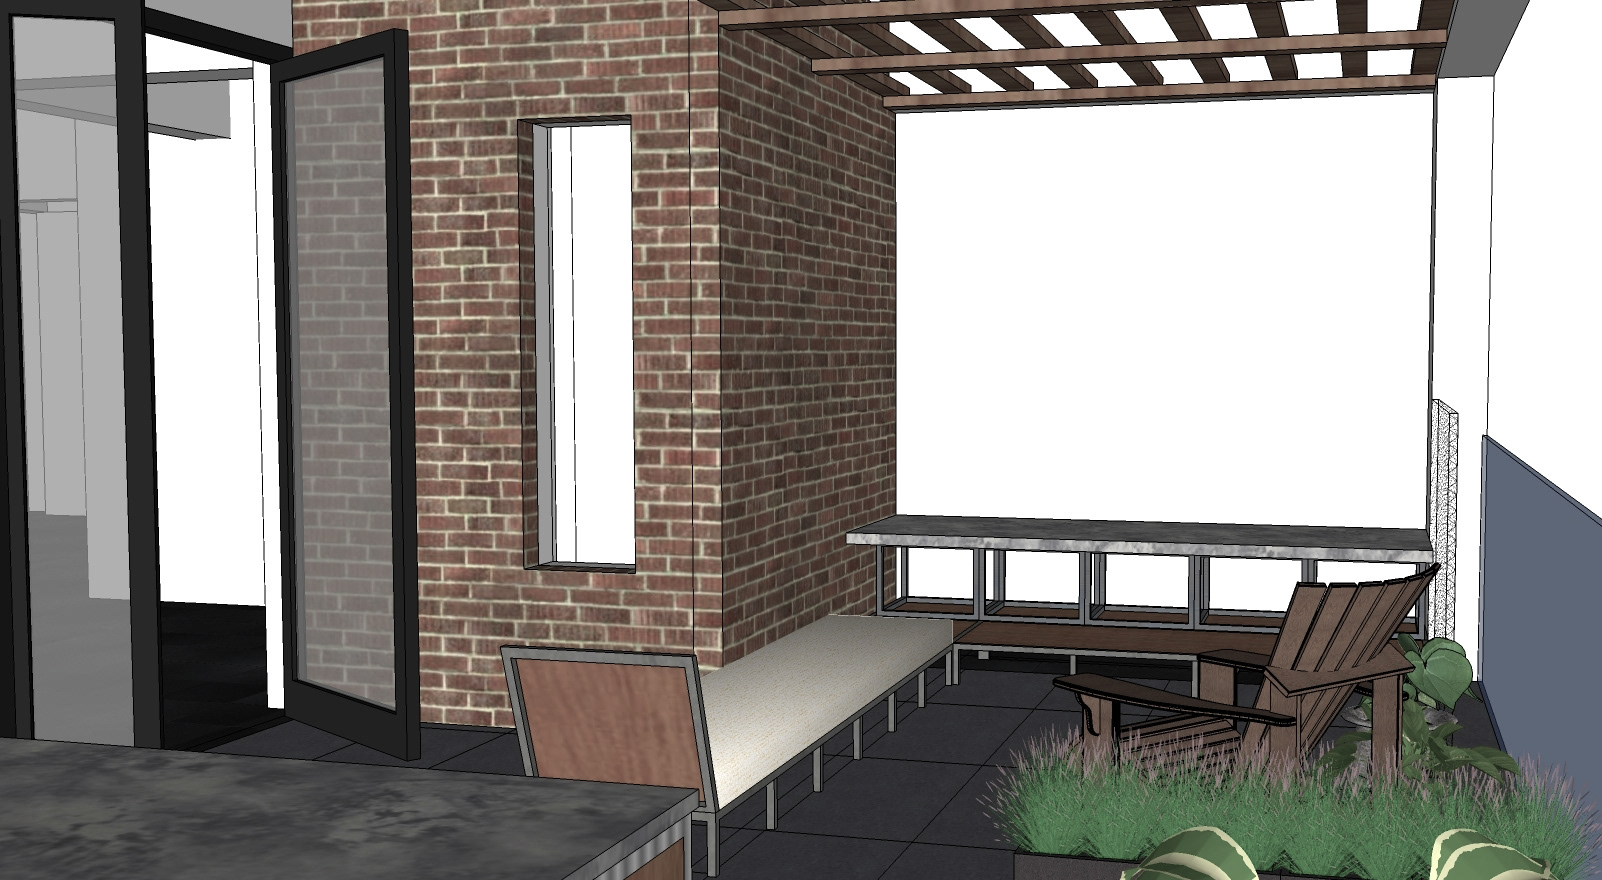 architectural design office. Design Of A Balcony Space To Capitalize On The Scenic View City\u0027s Largest Park, While Creating Semi-open Leisure For Small Gatherings. Architectural Office C